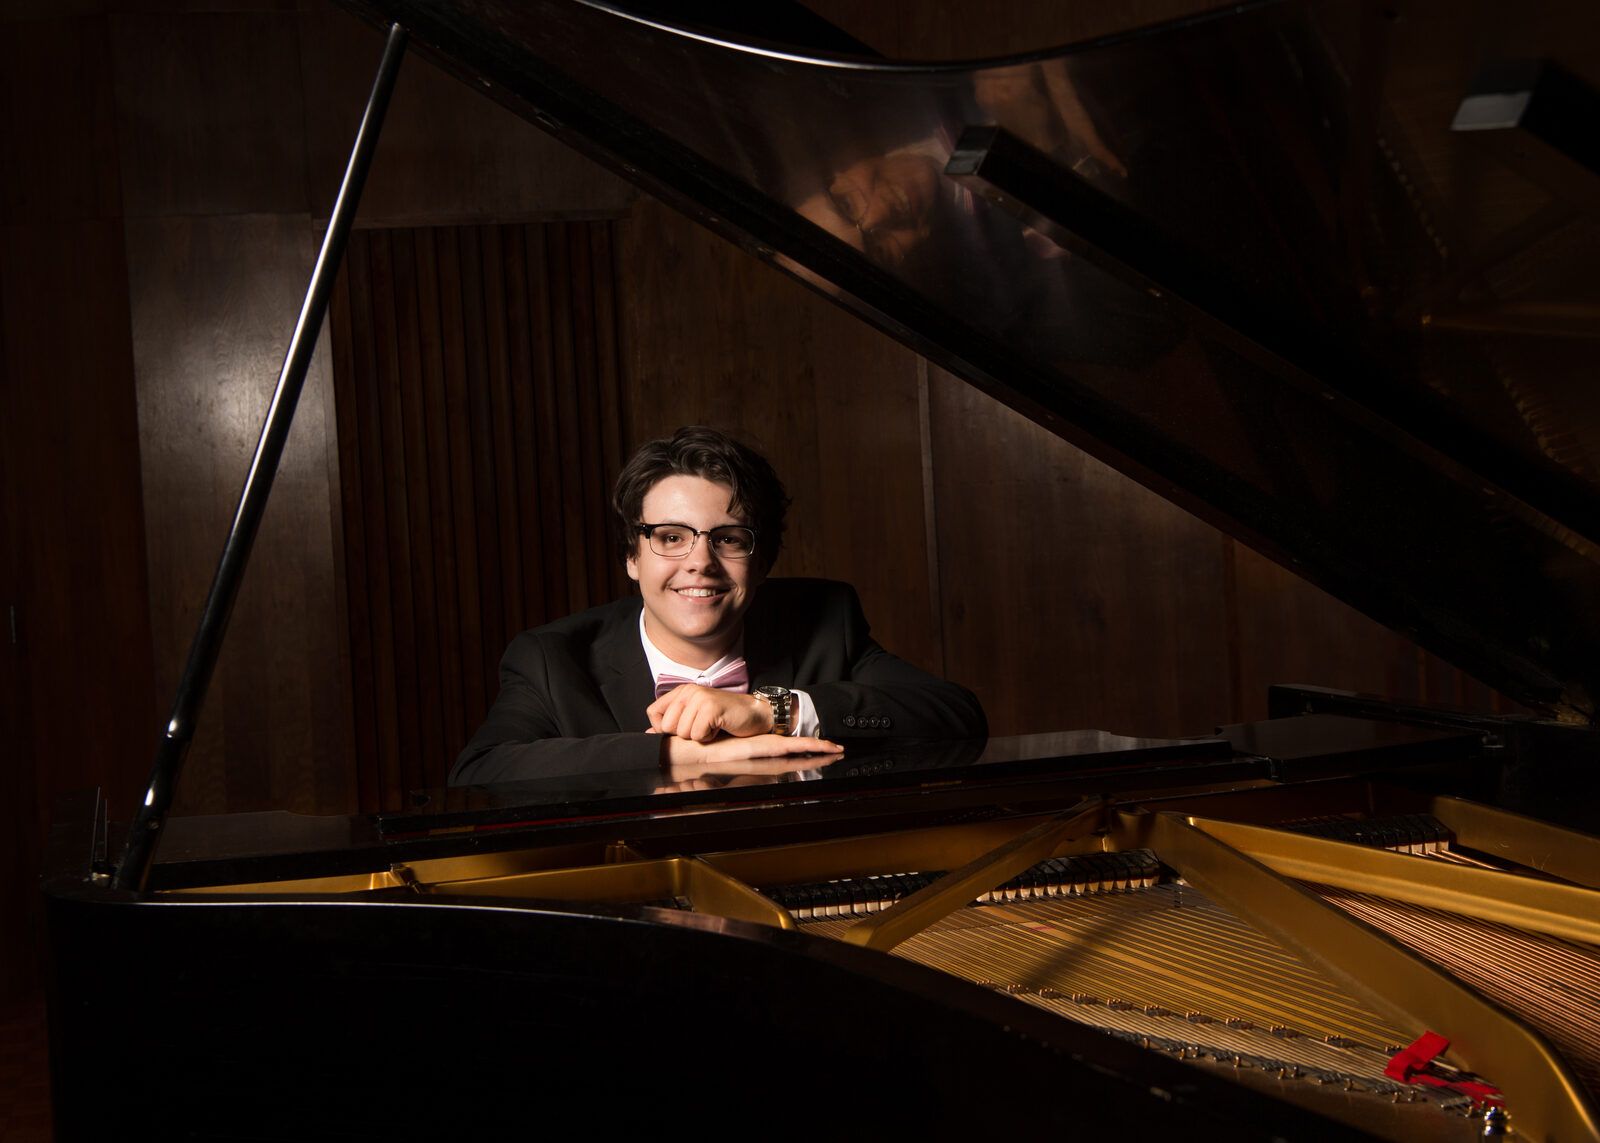 A student wearing glasses and a suit sits at a grand piano, smiling and leaning over the instrument with his hands crossed.